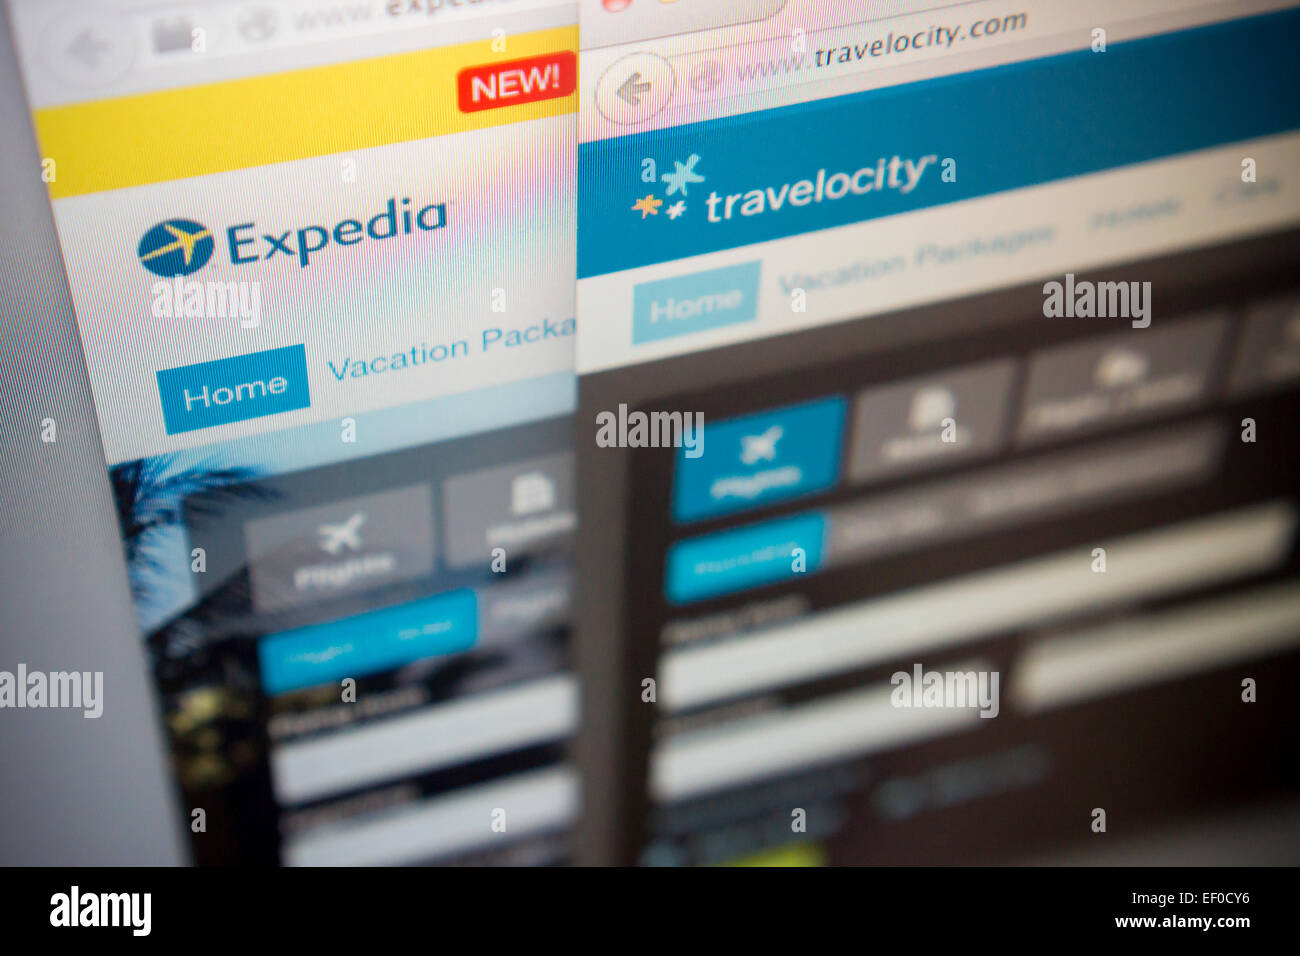 Travelocity search engine